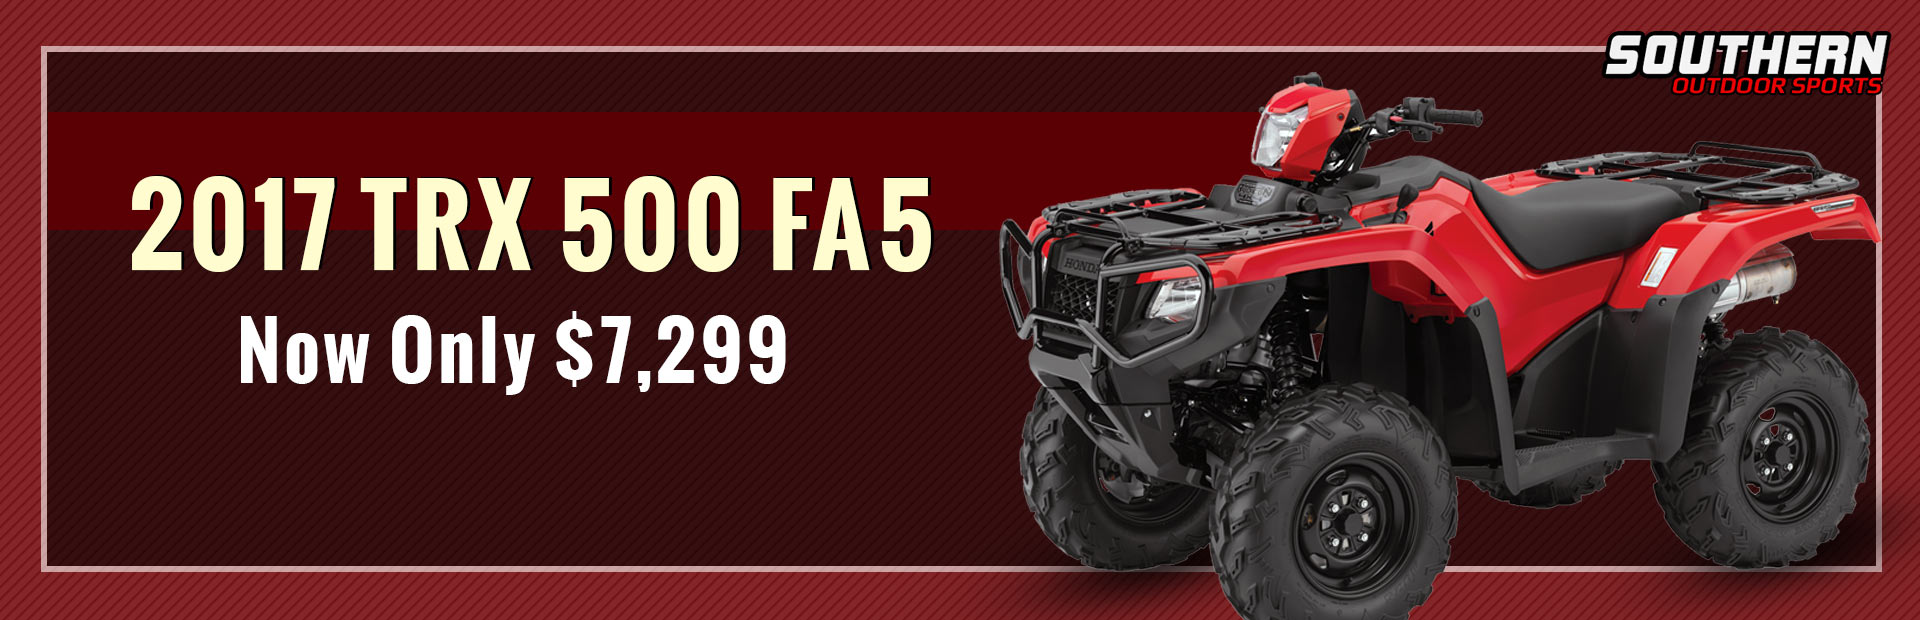 The 2017 Honda TRX 500 FA5 is now only $7,299!